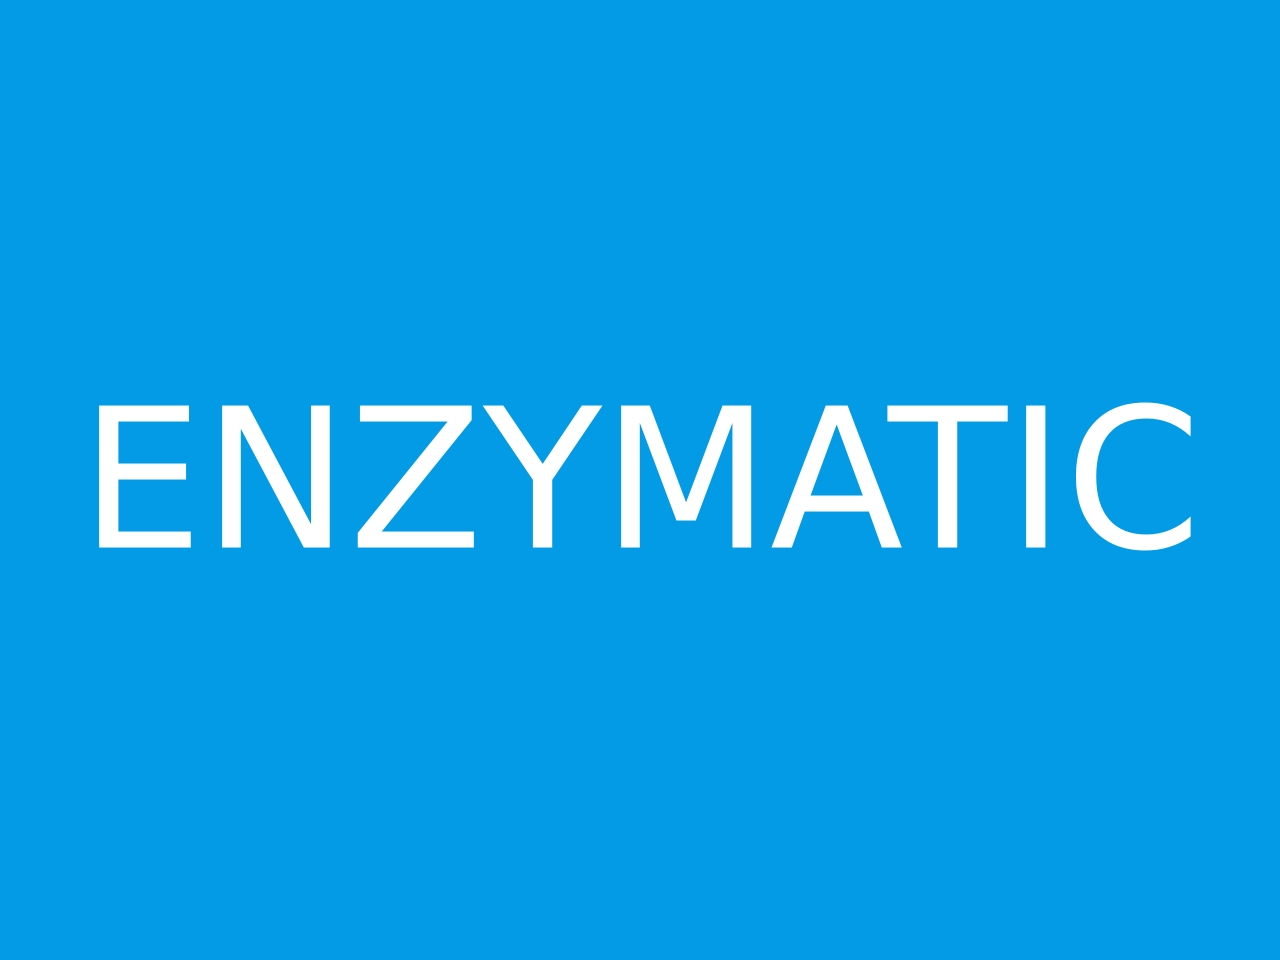 How to pronounce enzymatic in English  JustPronounce